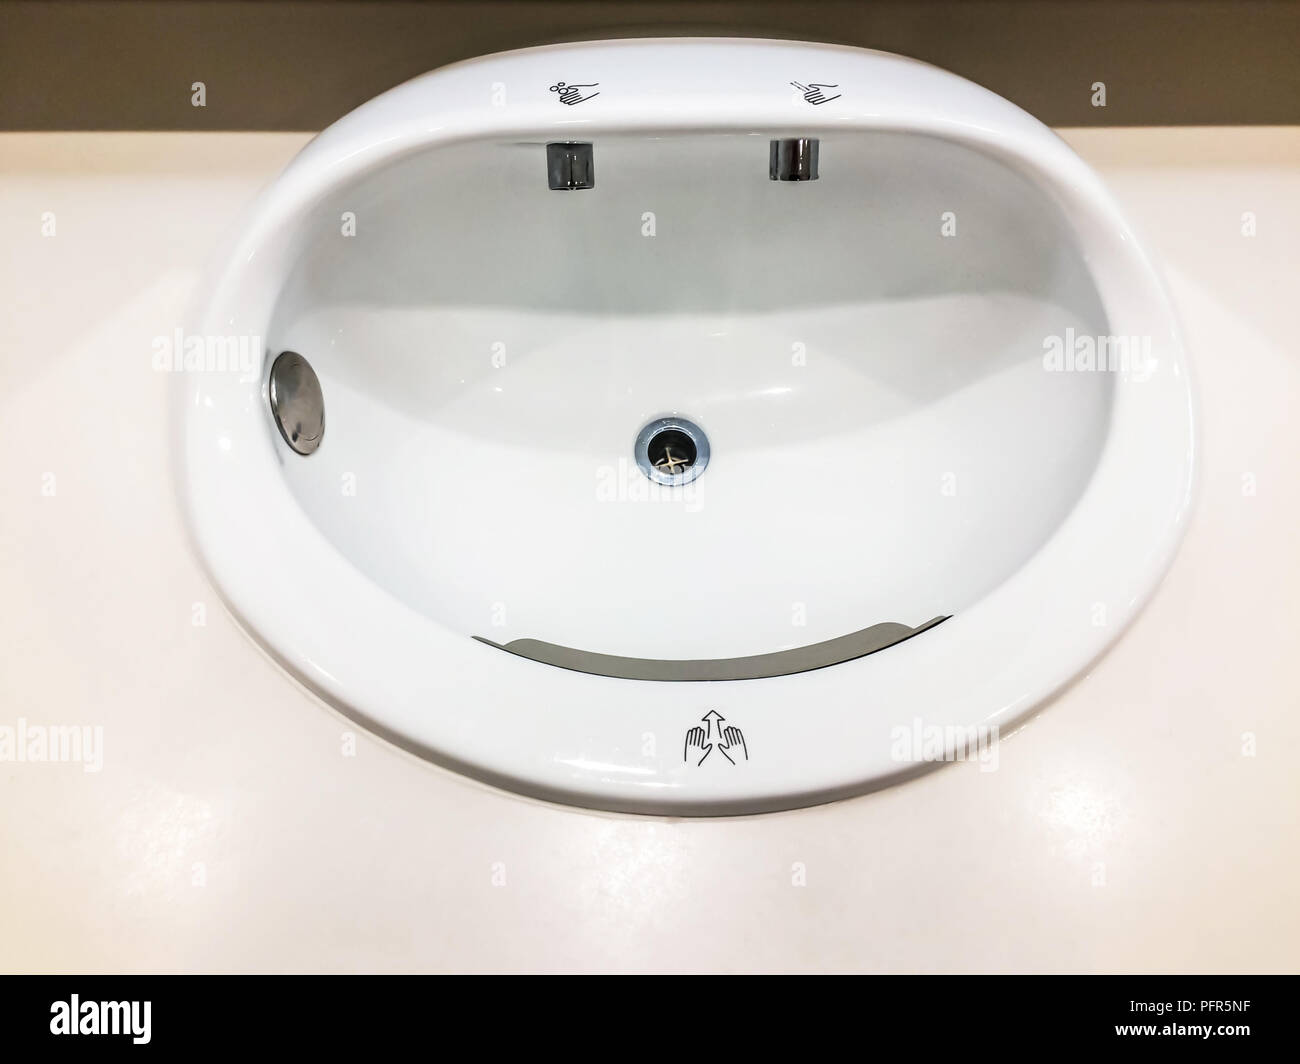 Hand basin automatic can be used hand blowers wind and soap at bathroom in modern international airport for service all passengers. - Stock Image